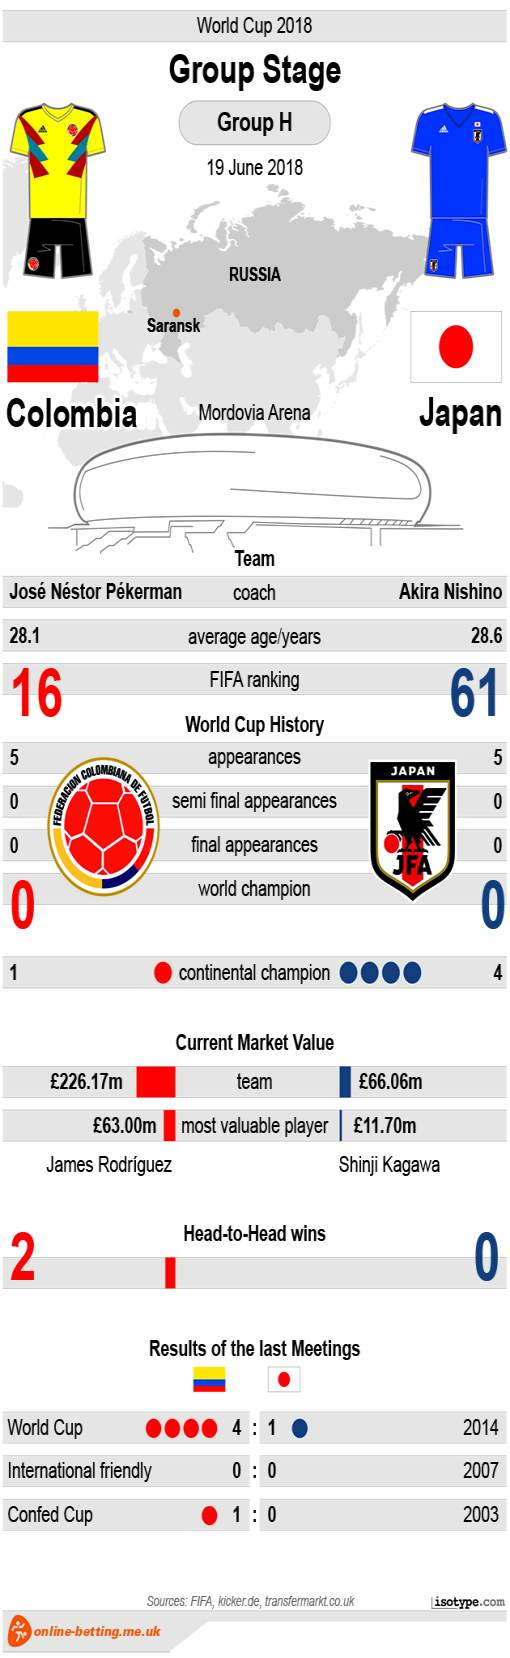 Colombia v Japan World Cup 2018 - Infographic